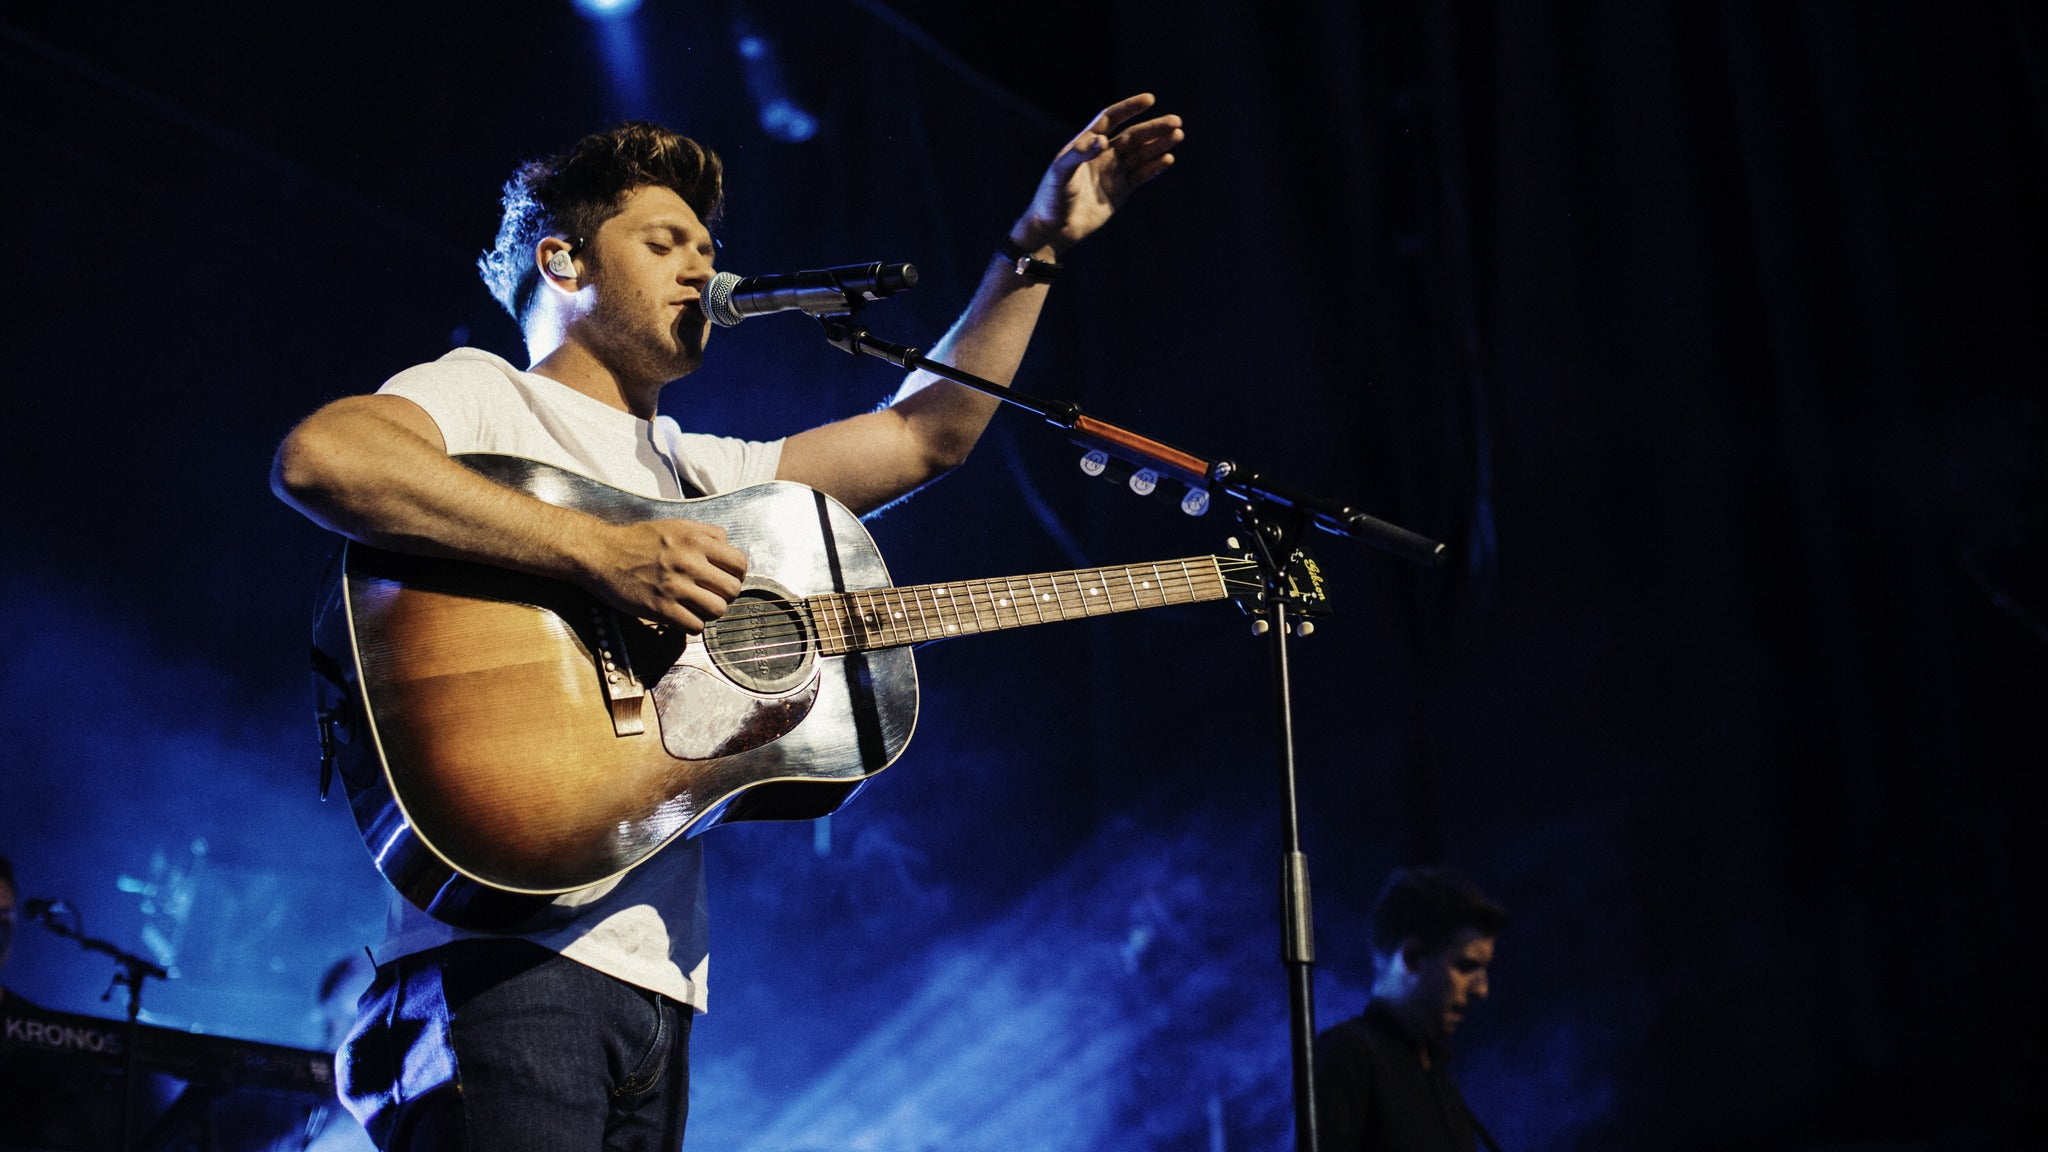 Niall Horan - Soundcheck Experience Upgrade Packages - Hartford, CT 06120